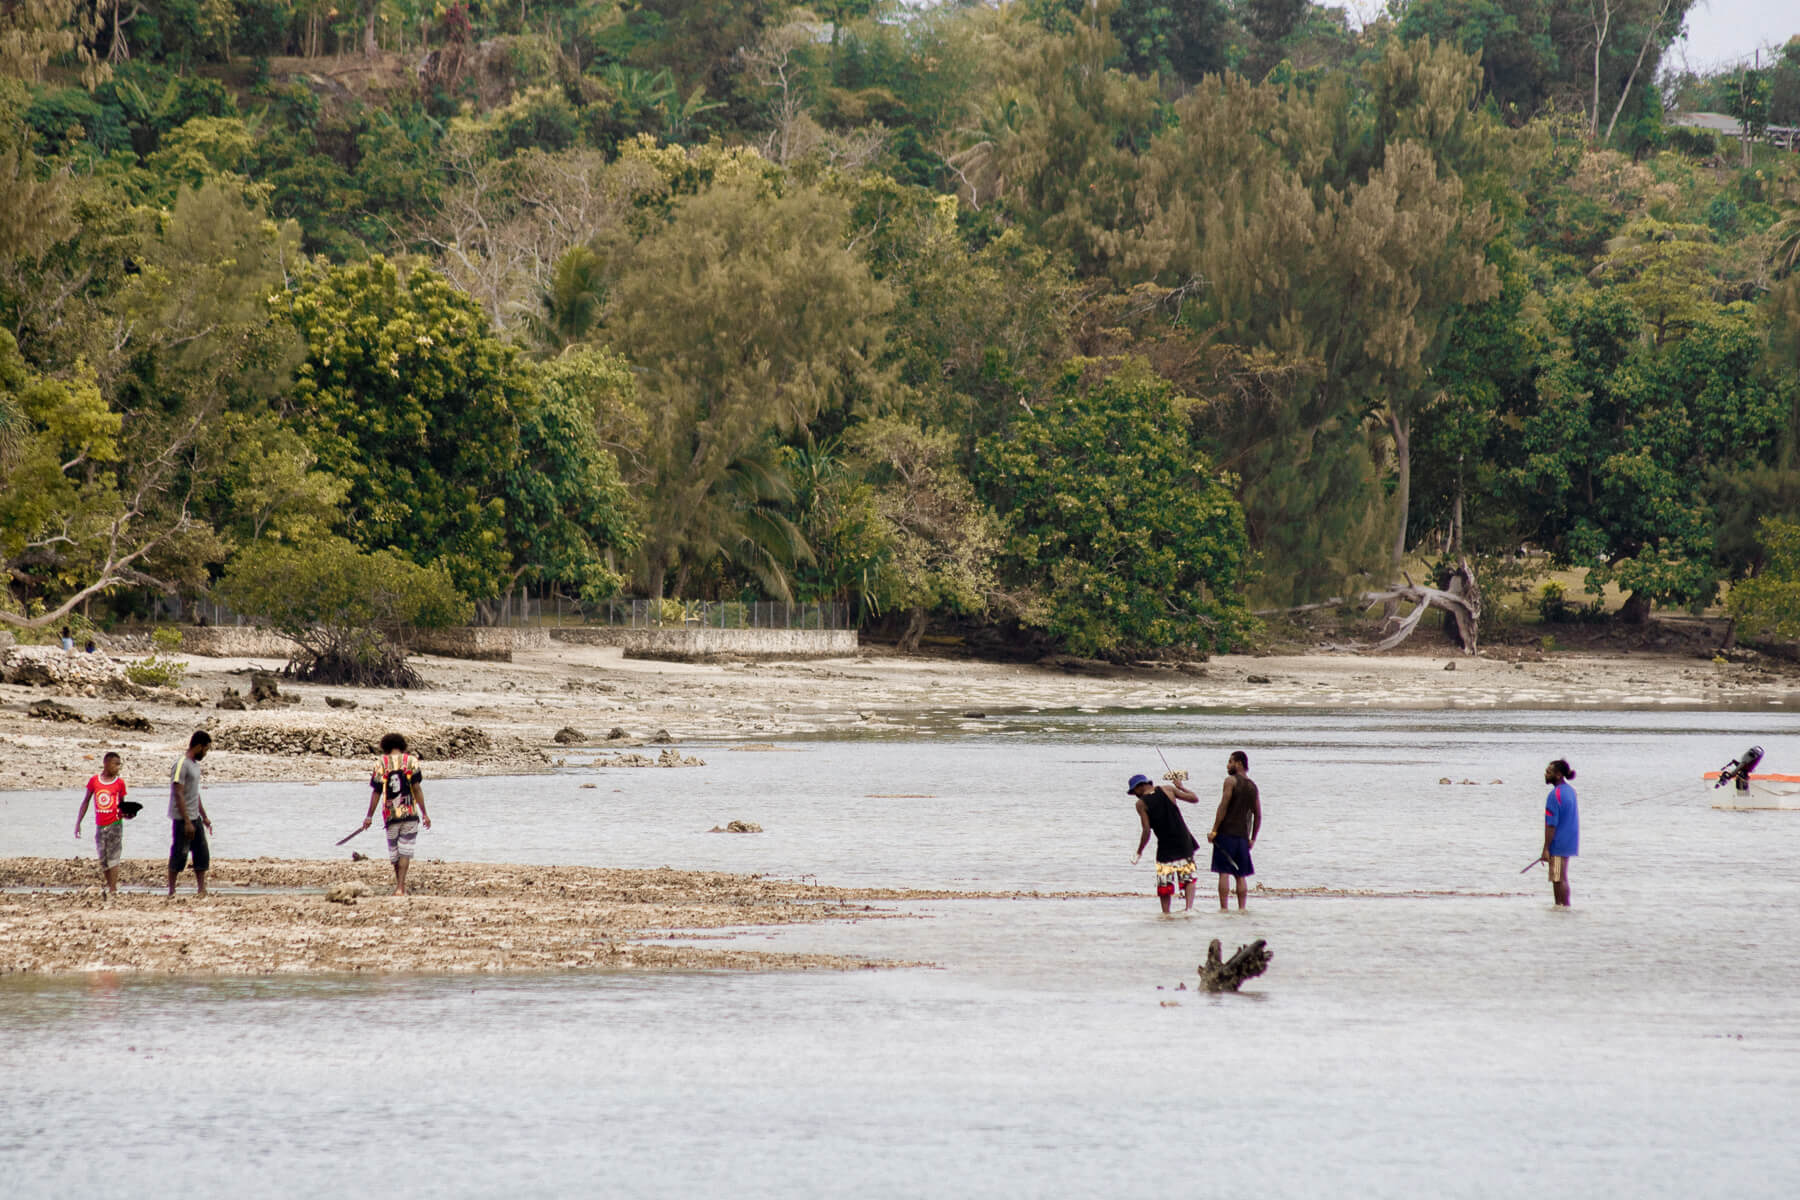 A wide image of the nearby Vanuatu locals fishing and having fun on a beach